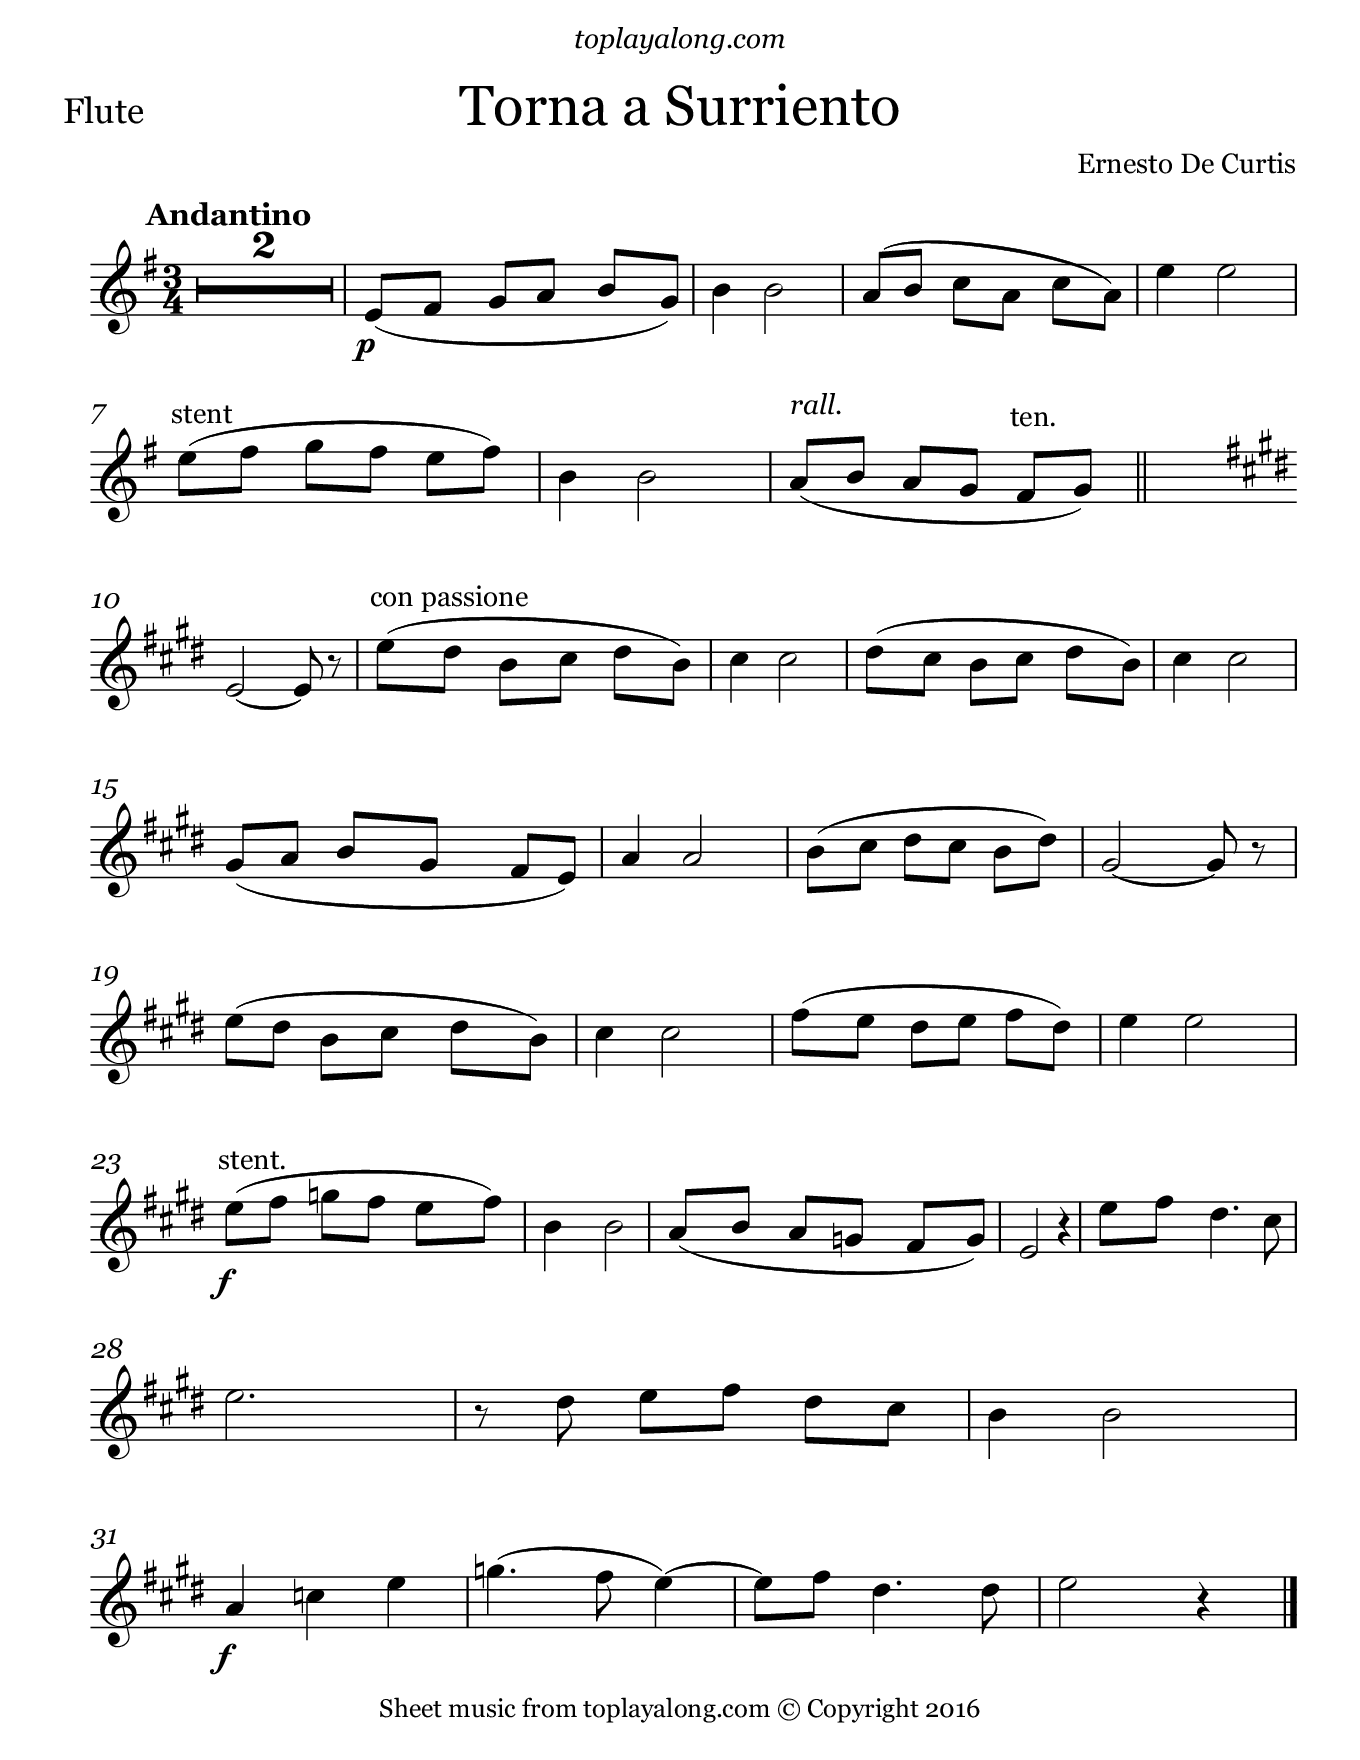 Torna a Surriento by Curtis. Sheet music for Flute, page 1.